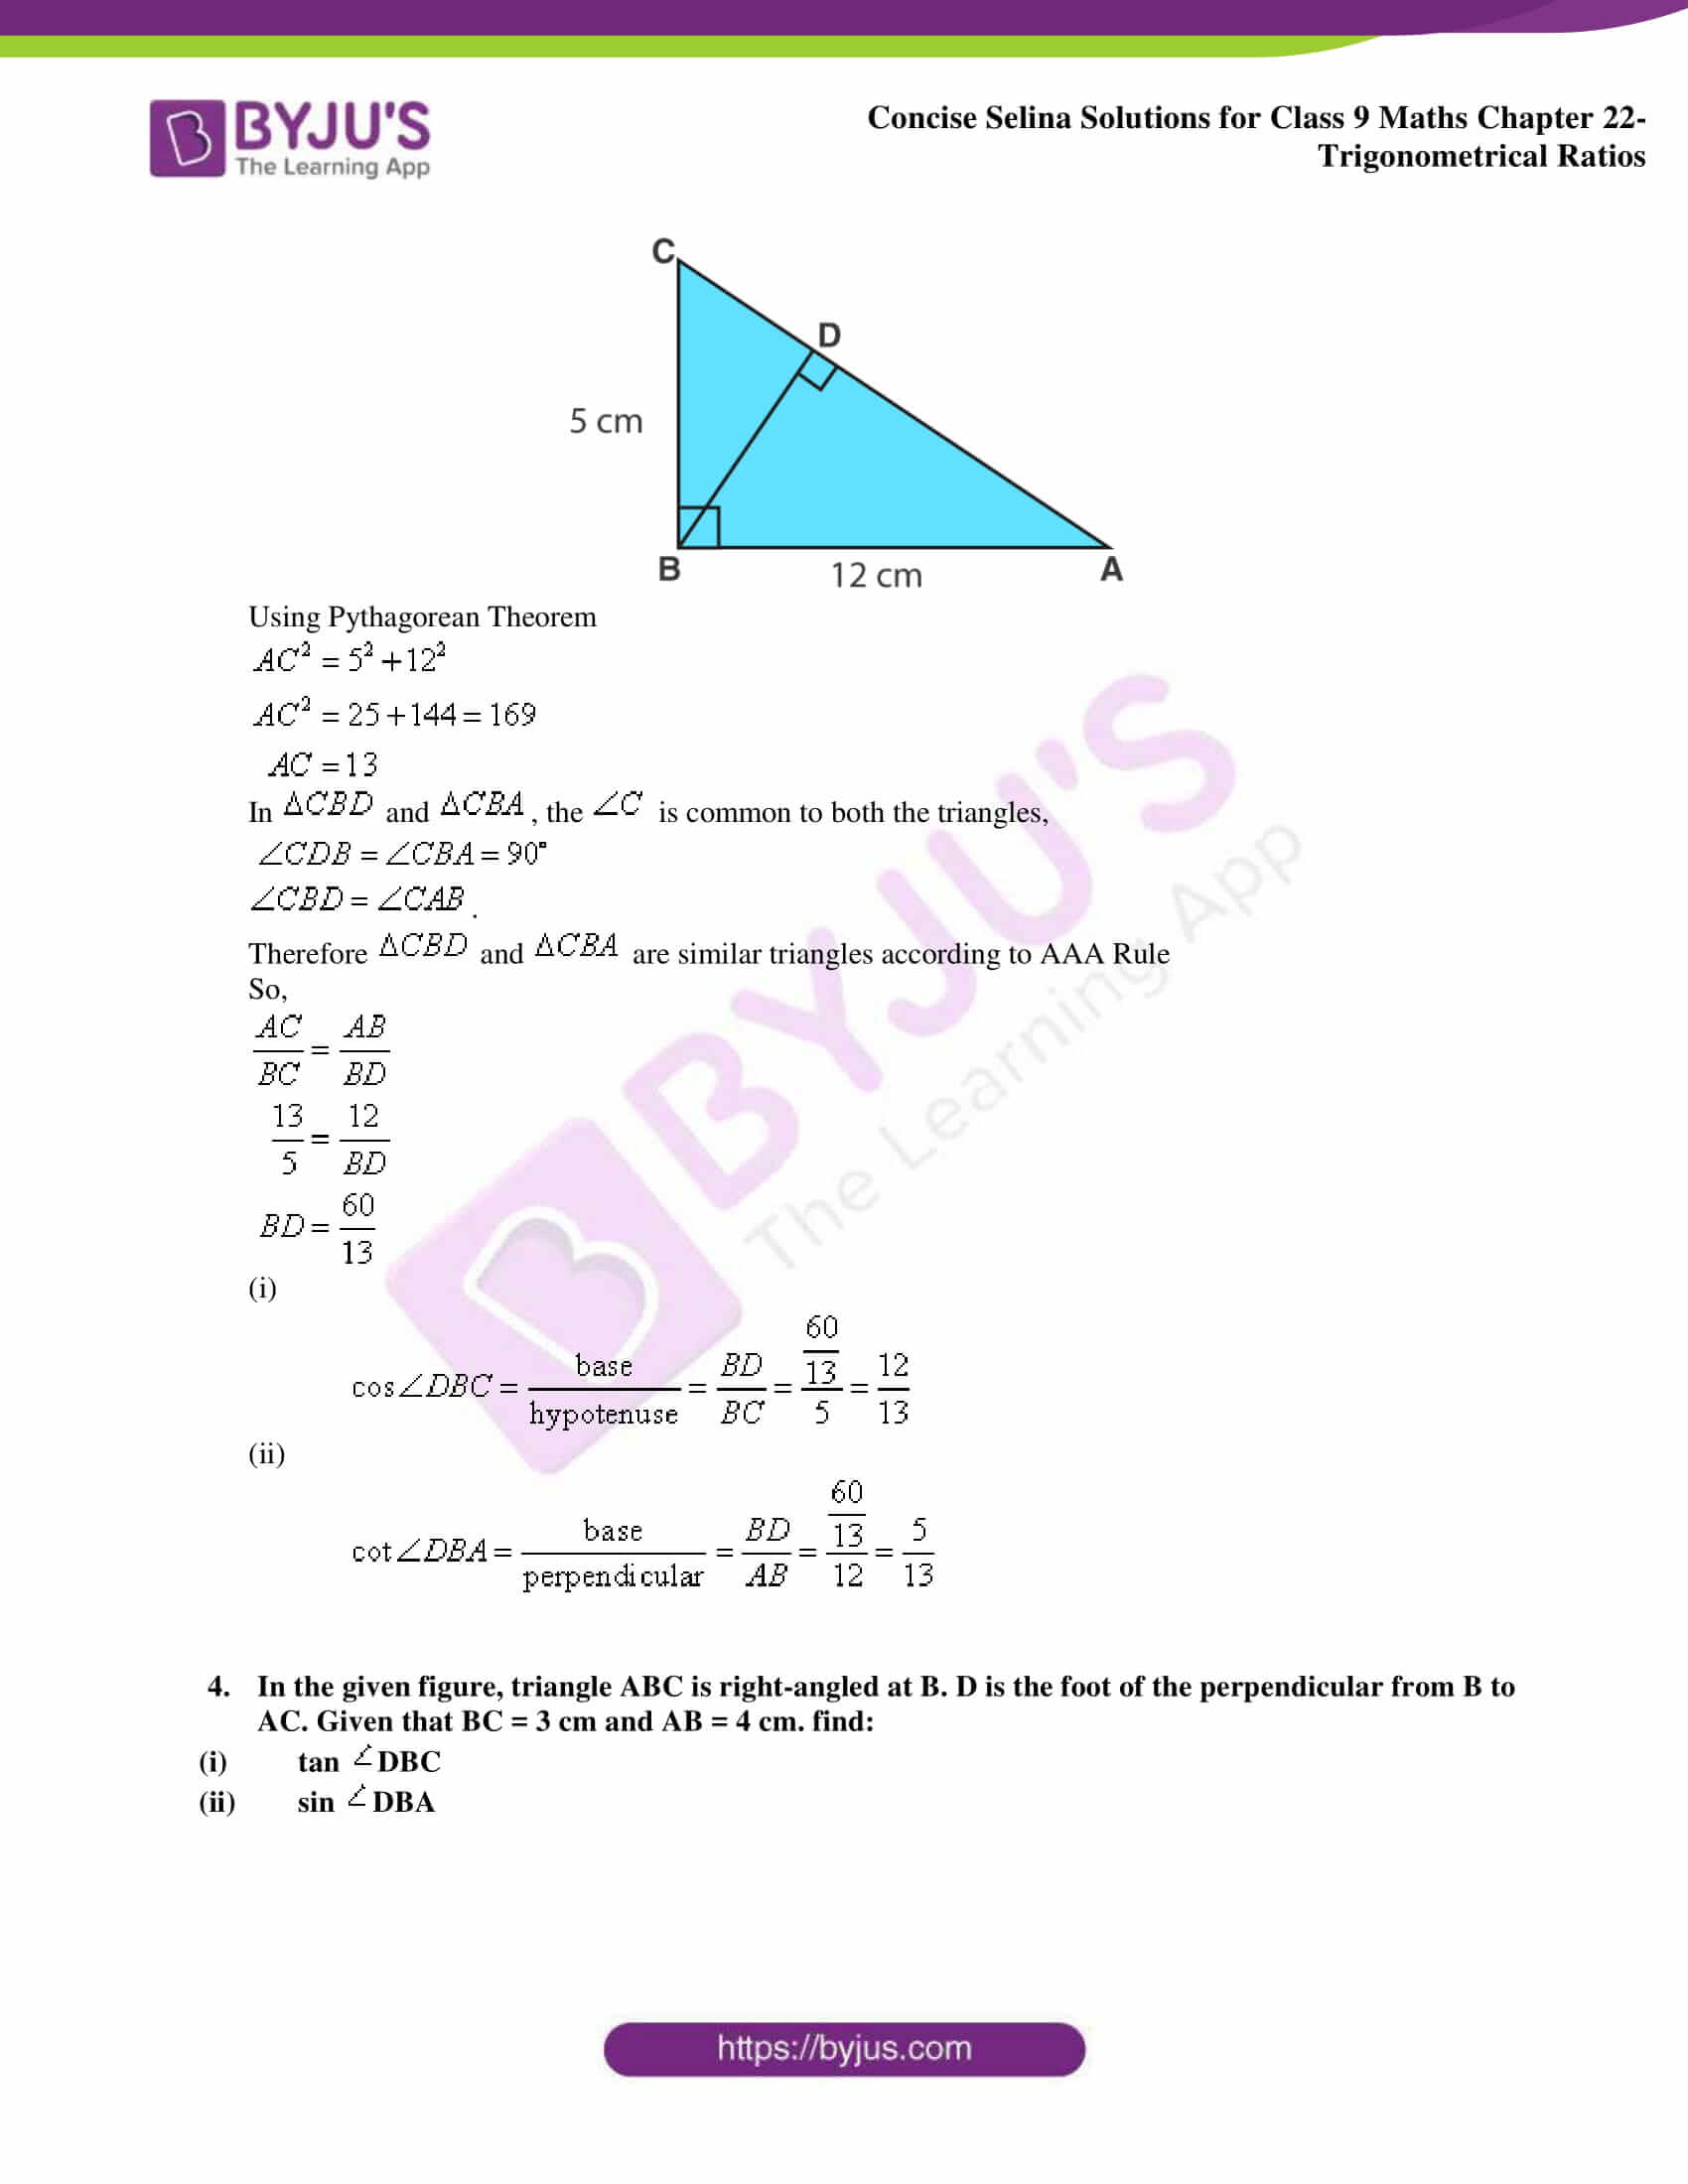 Concise Selina Solutions Class 9 Maths Chapter 22 Trigonometrical Ratios part 25